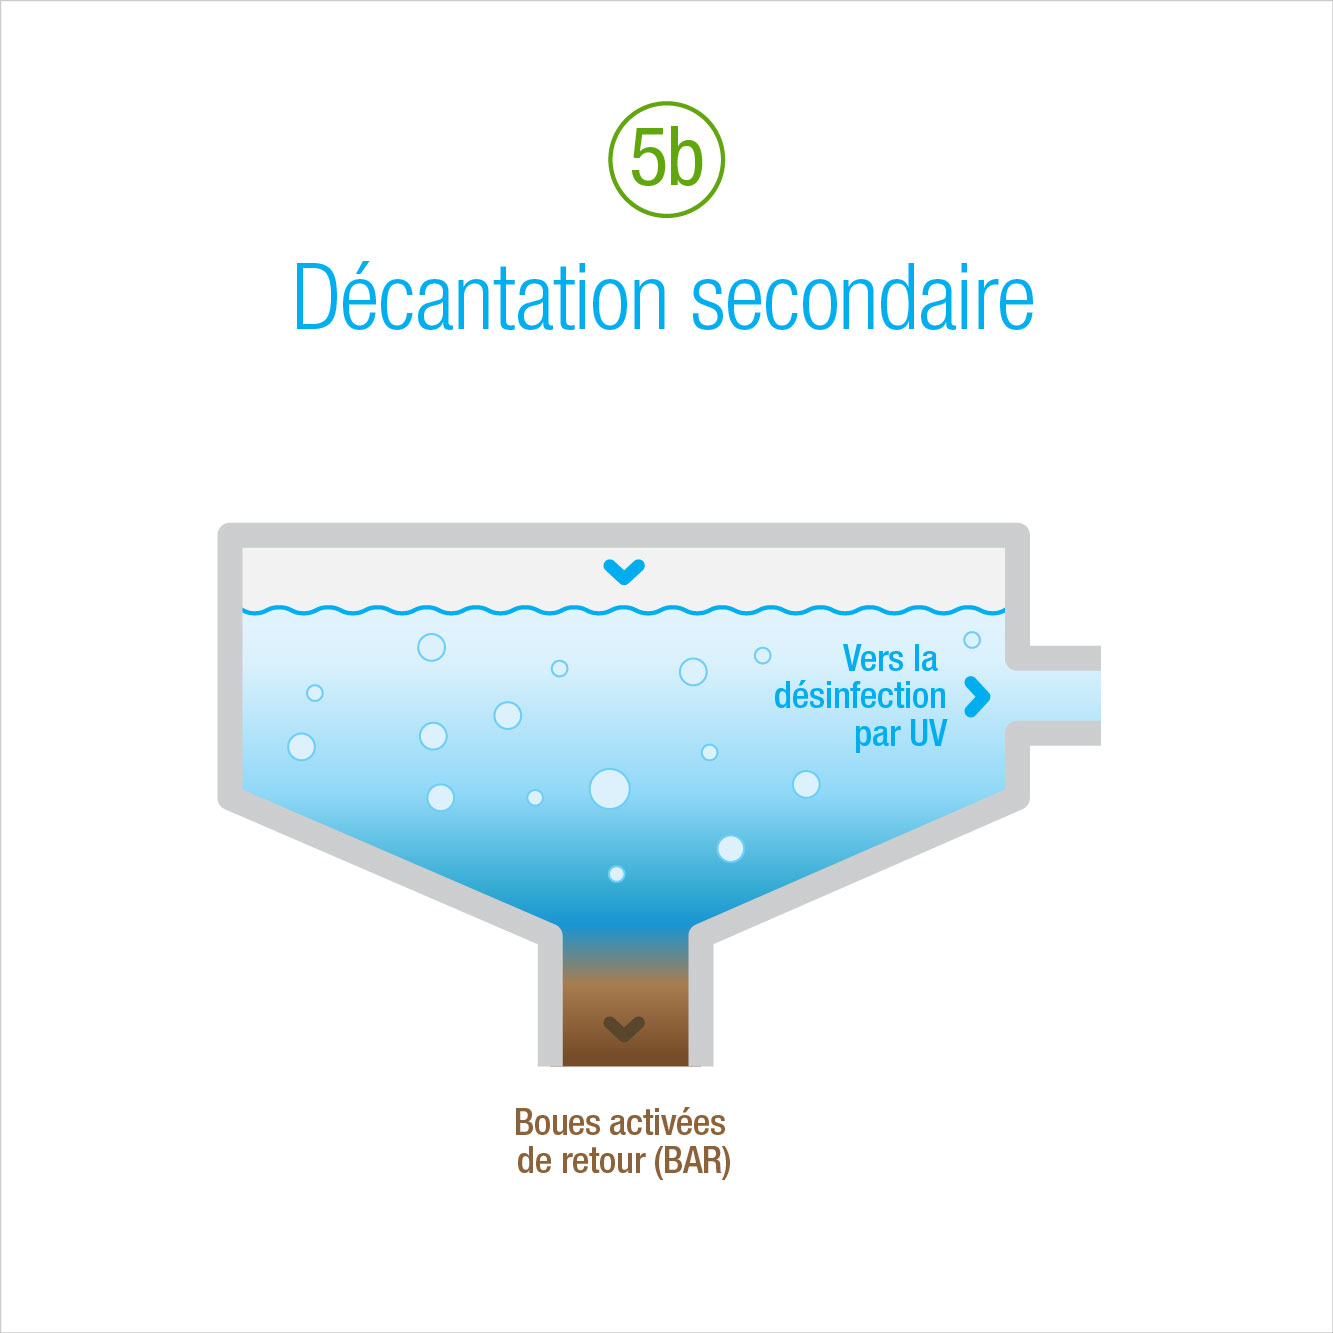 5b: Décantation secondaire